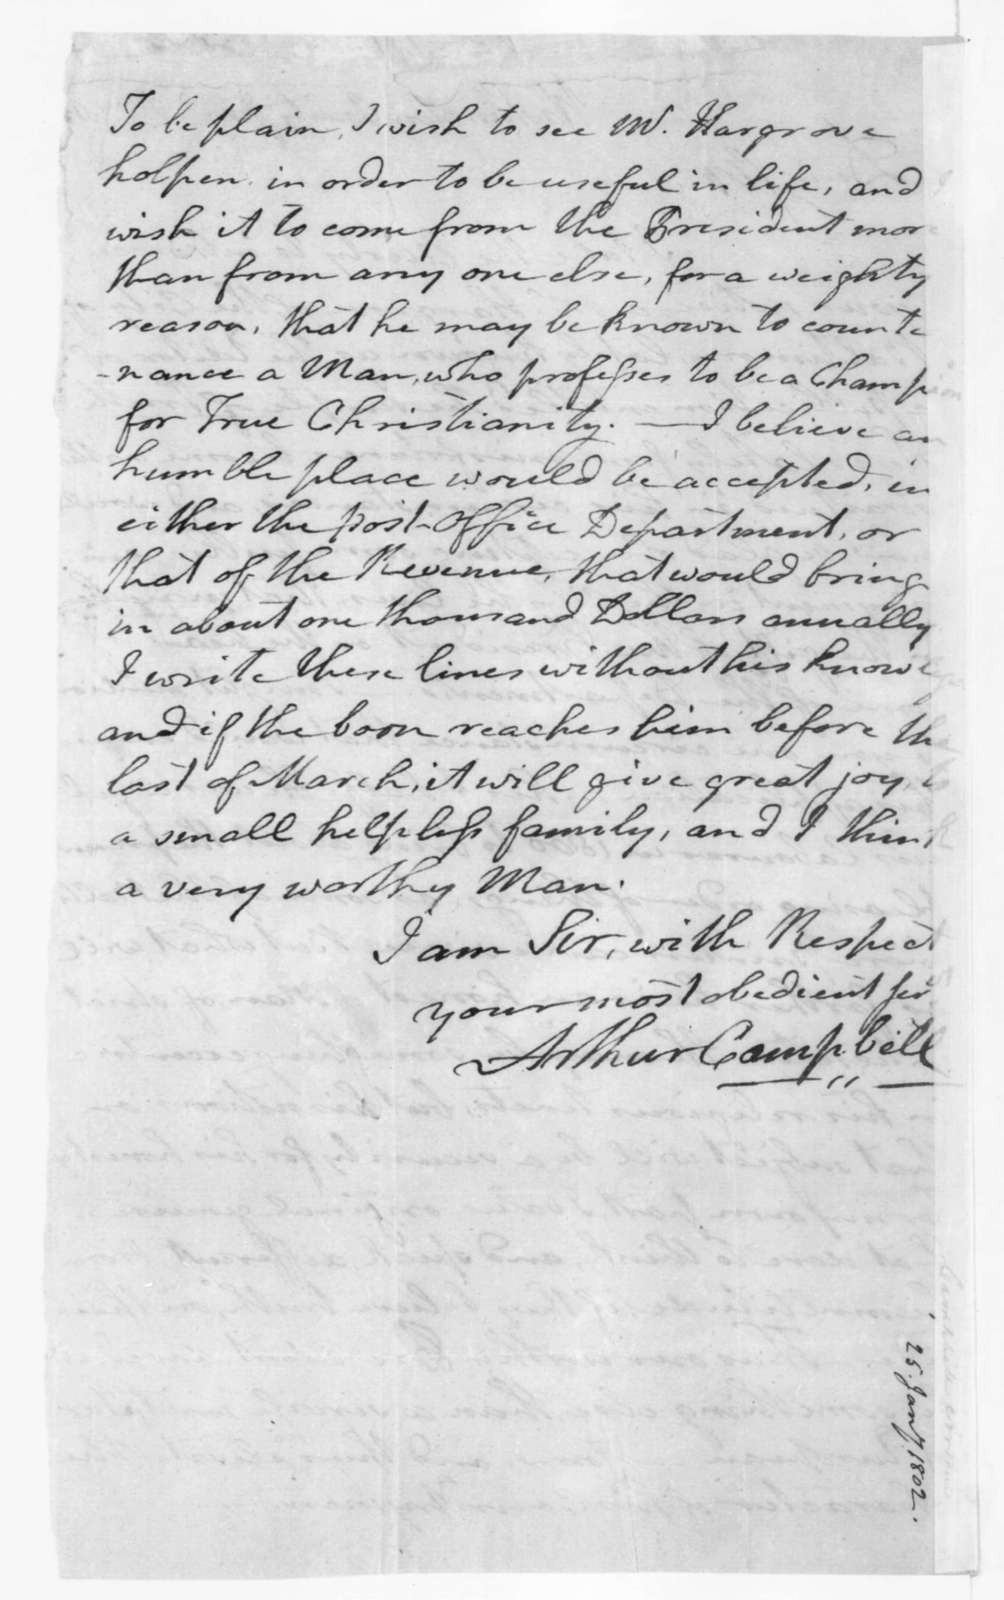 Arthur Campbell to James Madison, January 25, 1802.